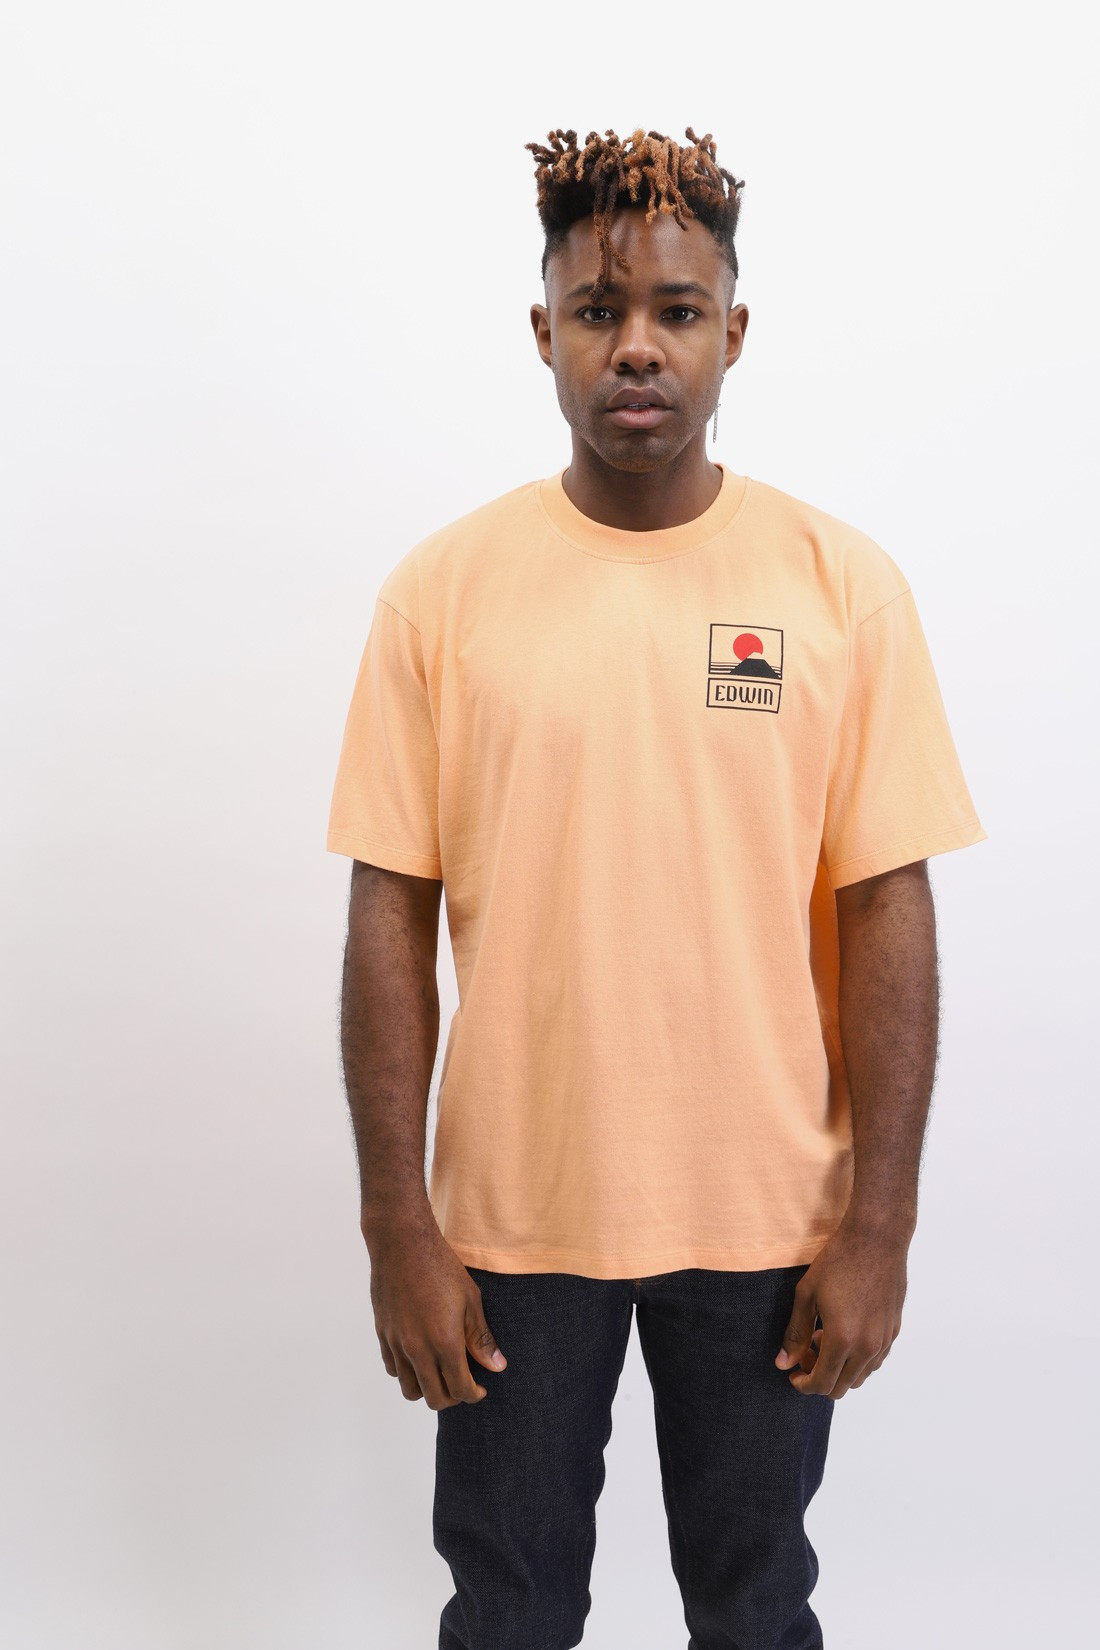 EDWIN / Sunset on mt fuji t-shirt Cantaloupe